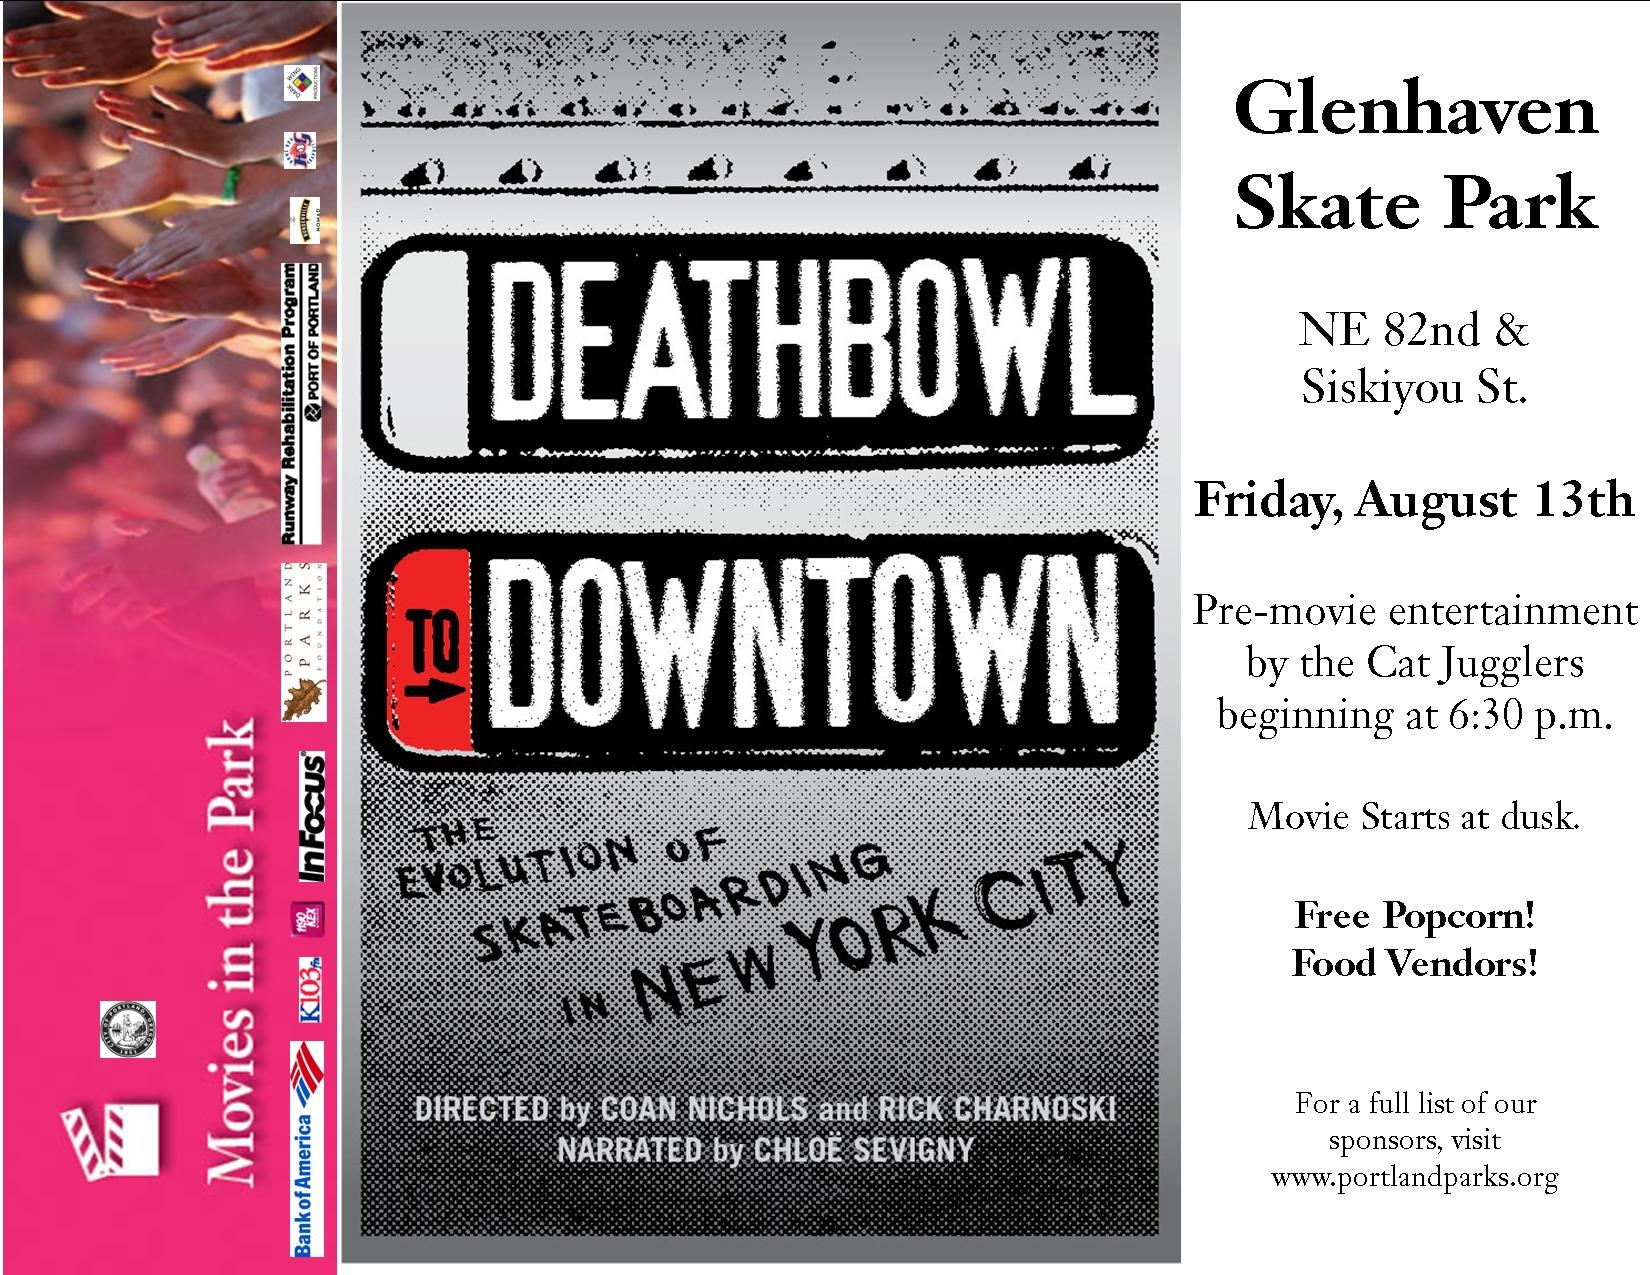 Deathbowl to Downtown - Movie in the Park @ Glenhaven Skate Park Flier